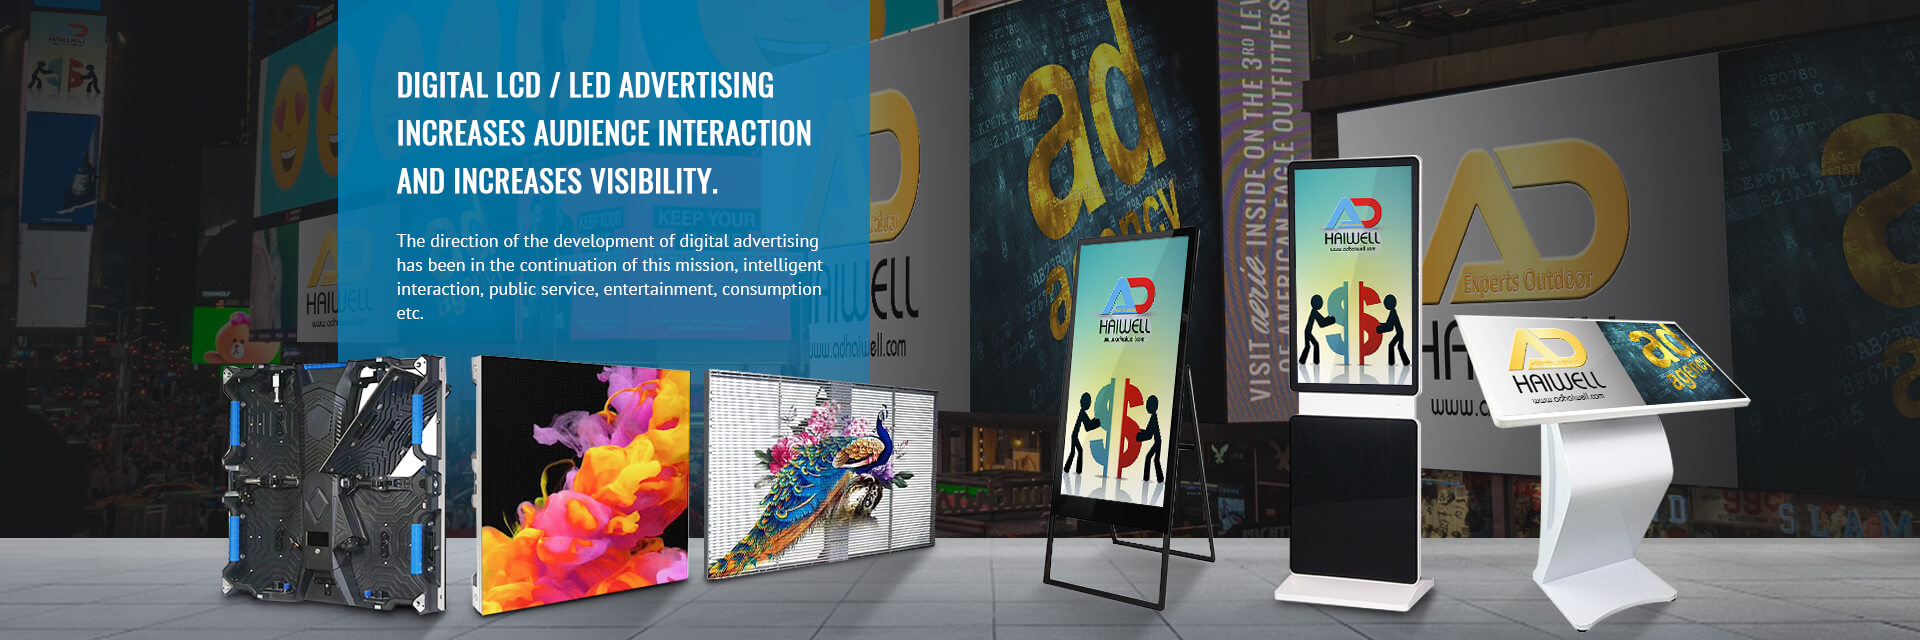 Digital LCD/LED Advertising Display